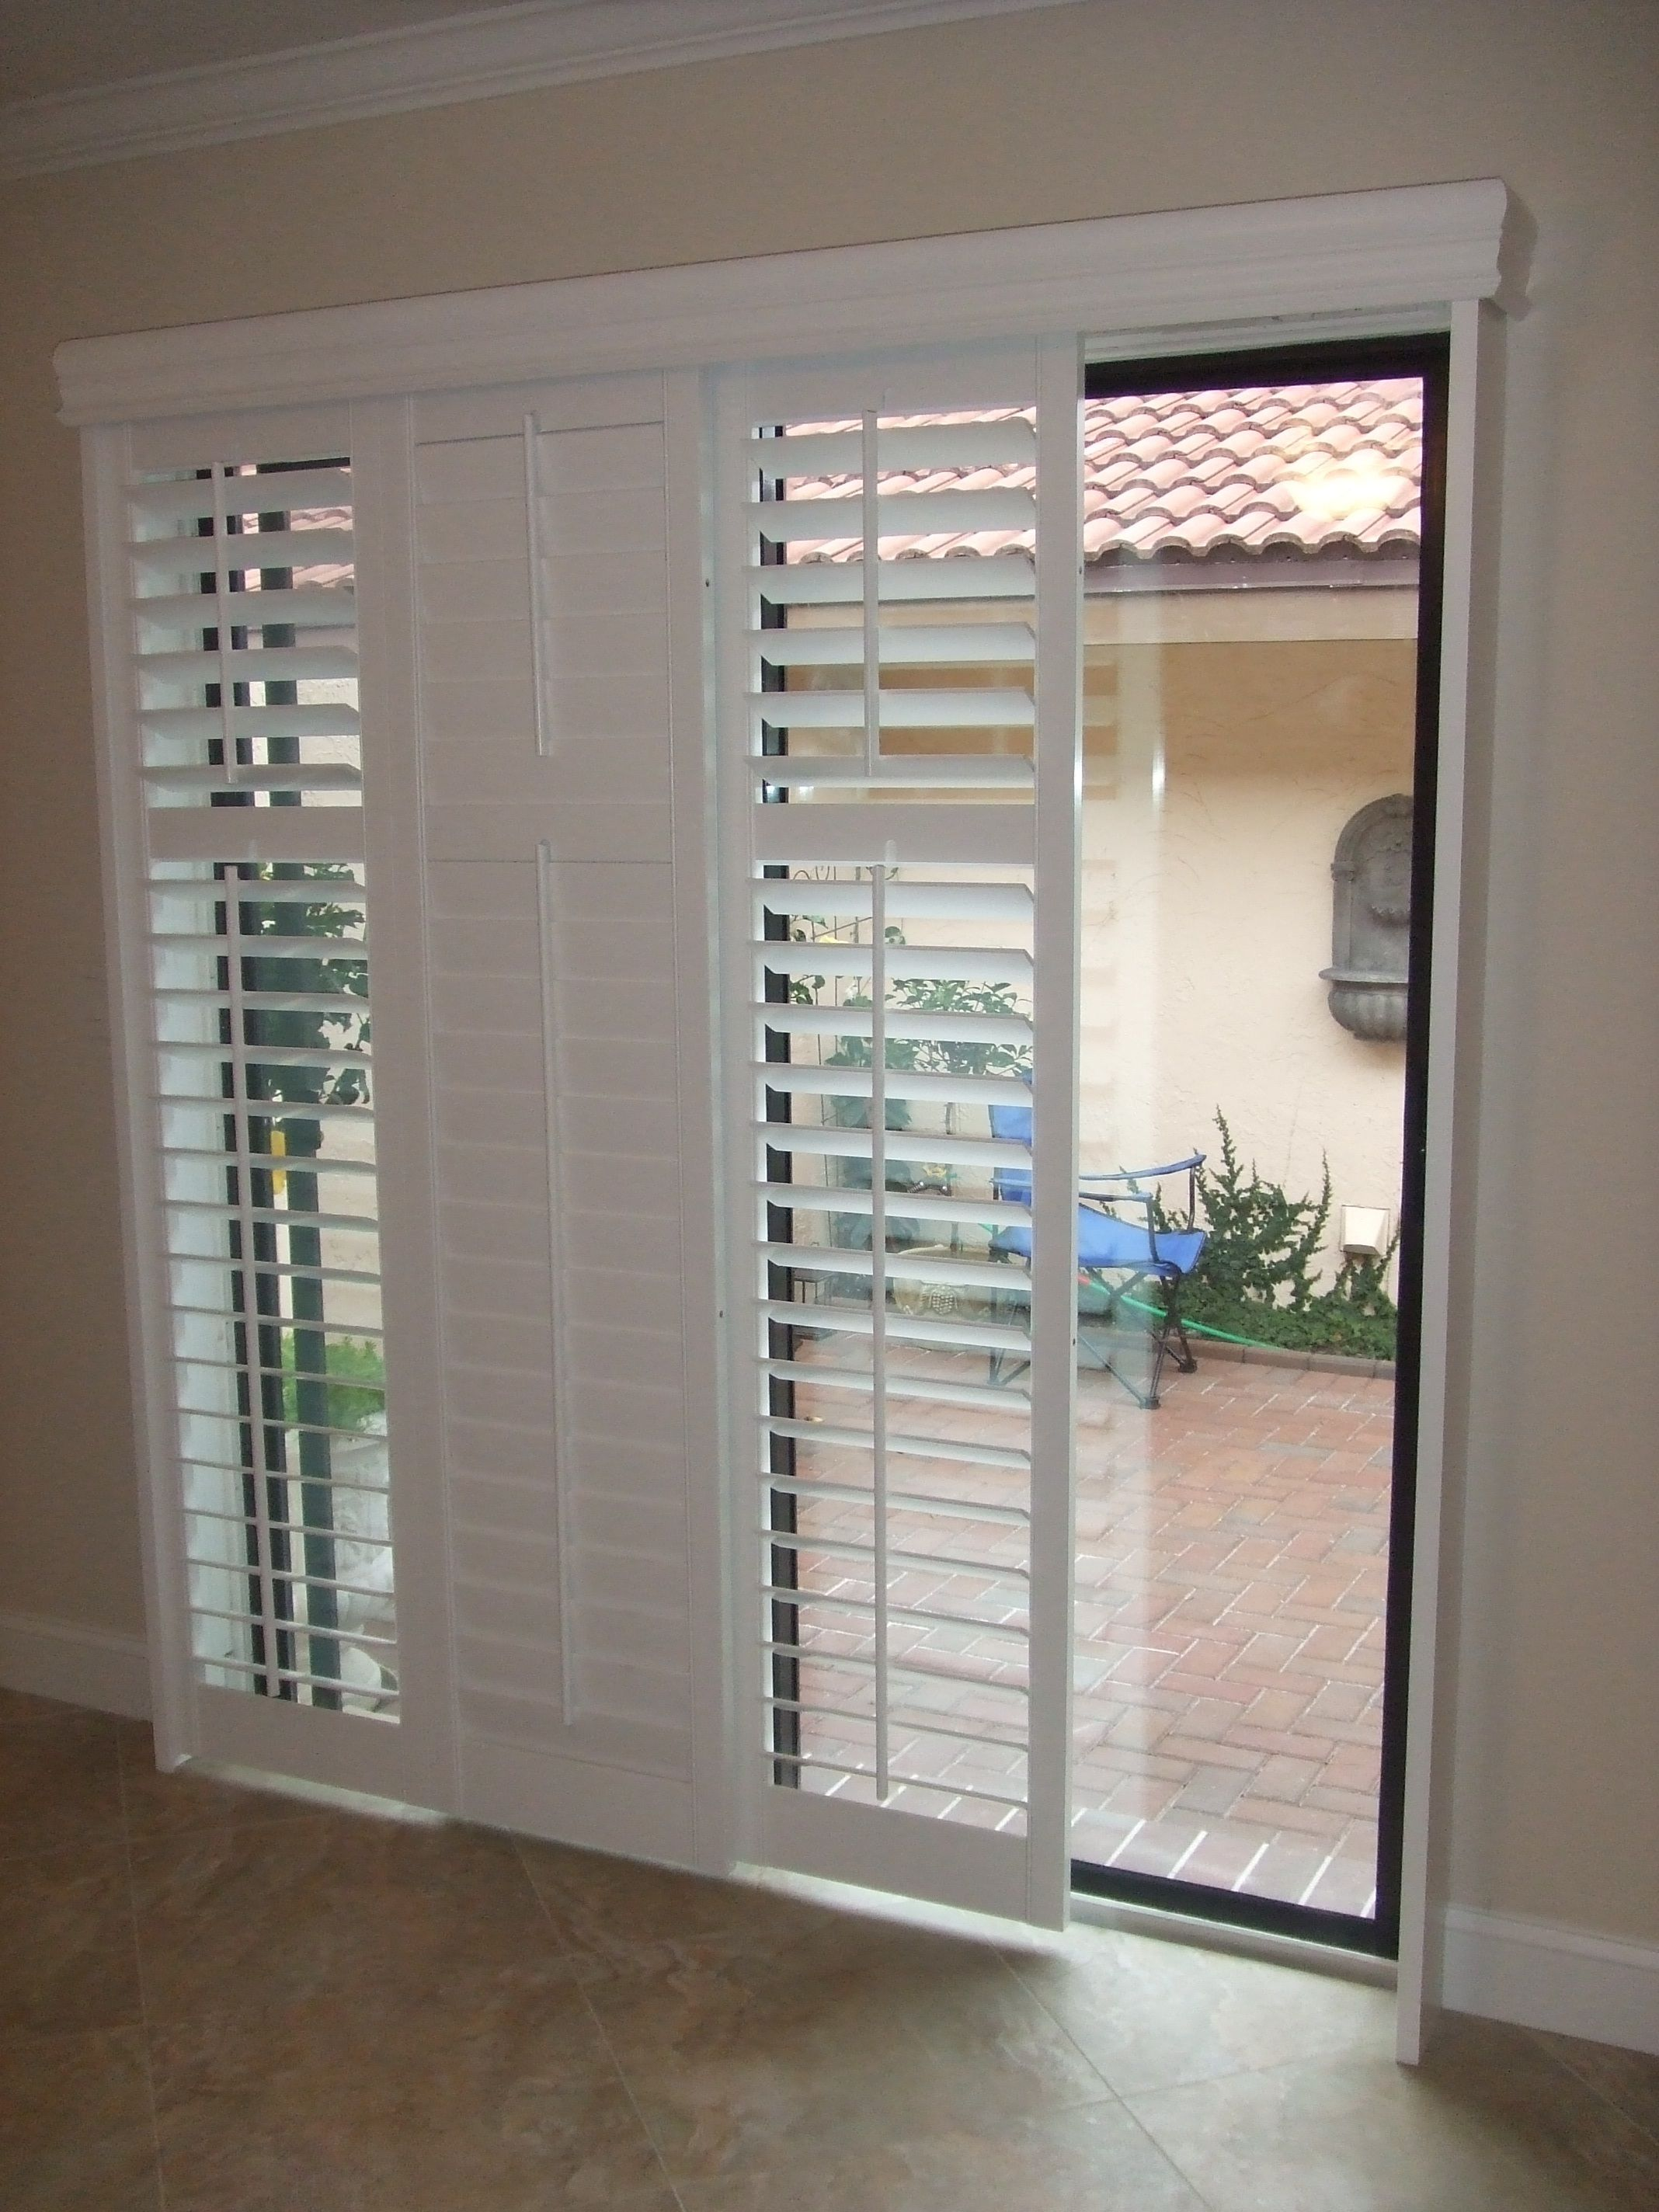 shutters mice plantation blinds modern with window coverings blind california